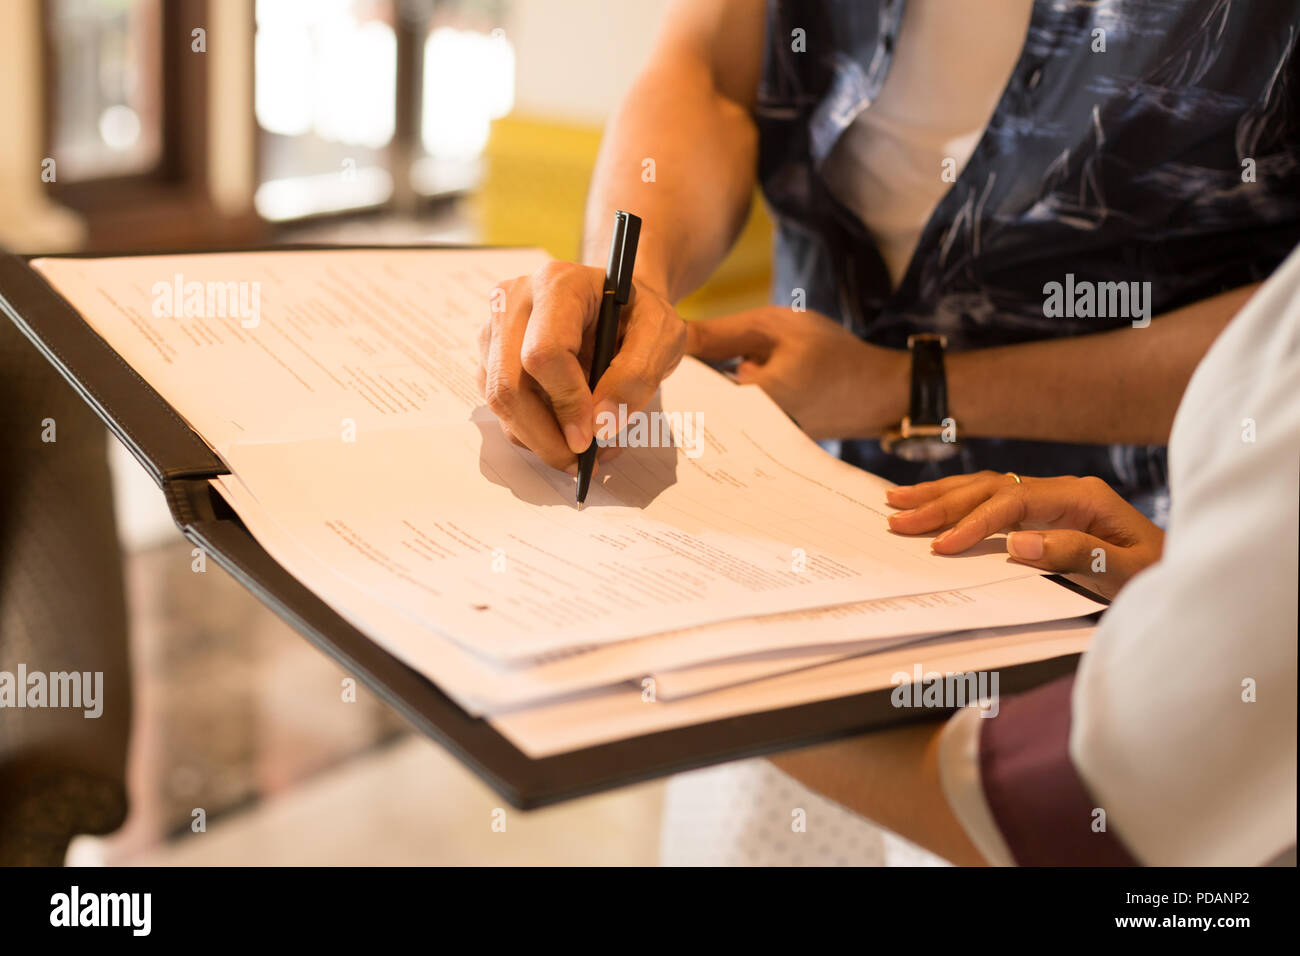 Man hand signing agreement from for hotel reservation. Stock Photo